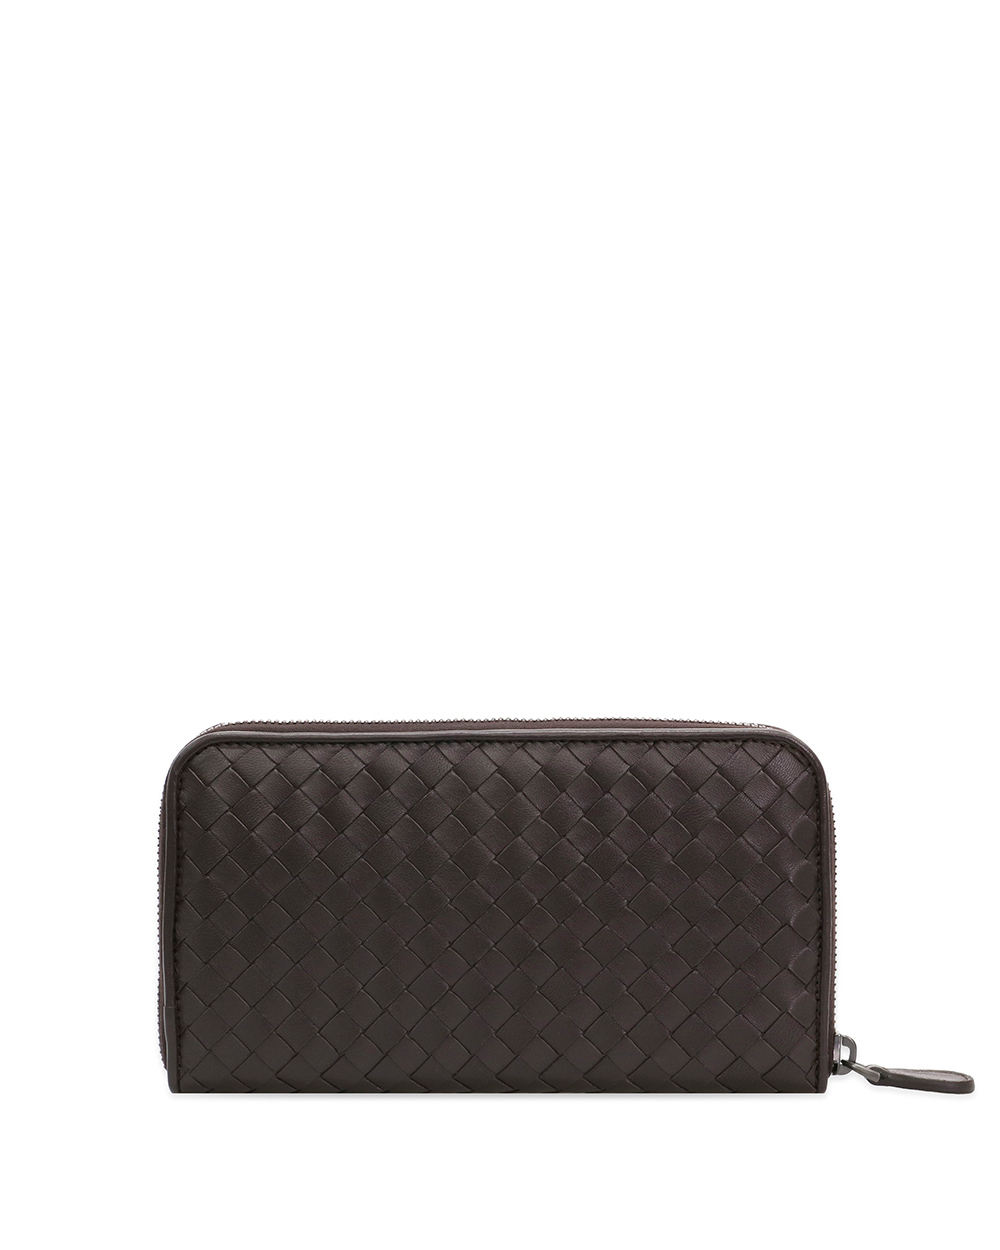 Woven Lamb Leather Zip Wallet 2